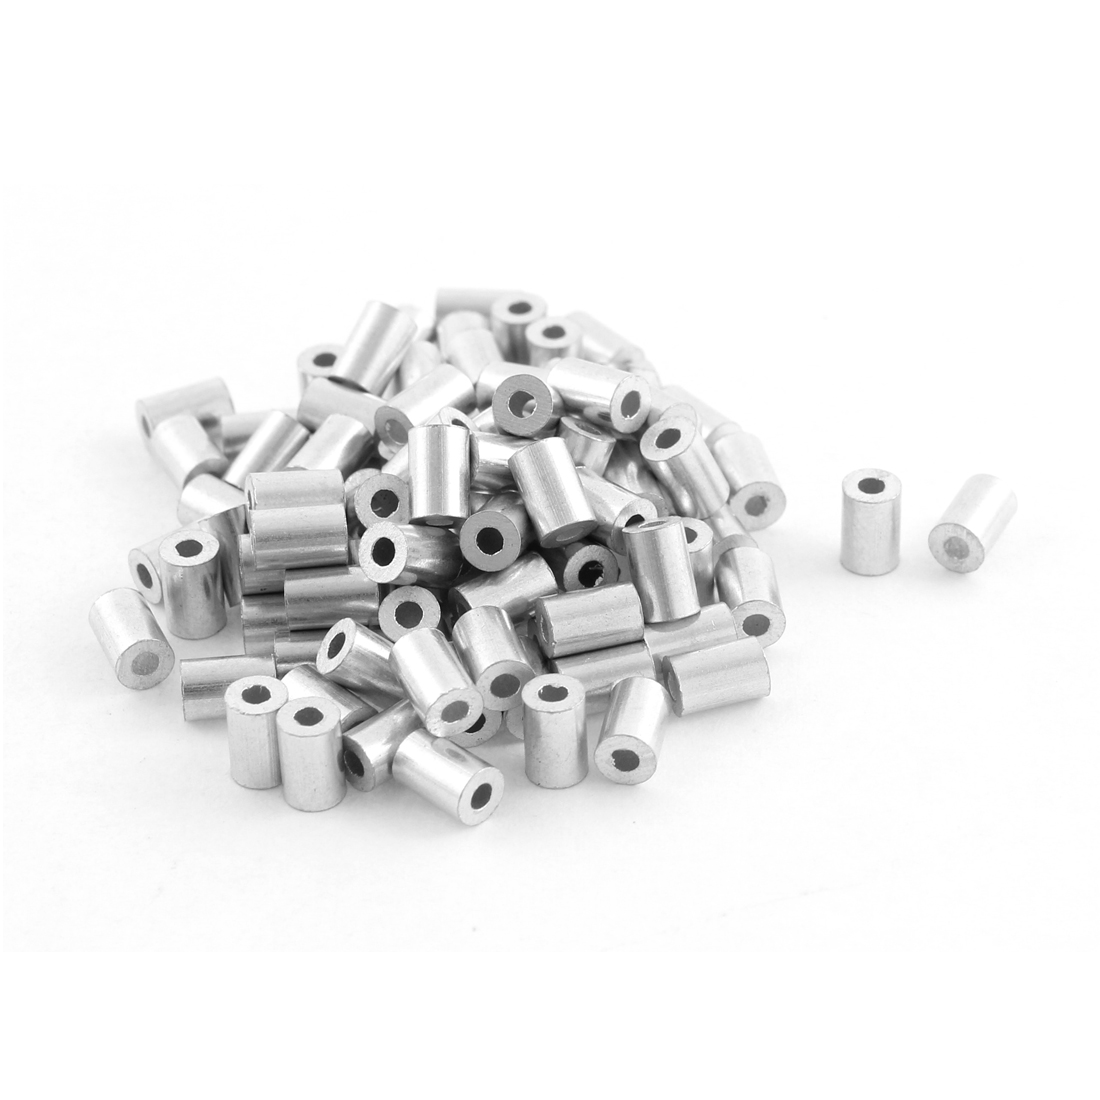 100pcs Aluminum Cable Stops Sleeves for 1mm Wire Rope Swage Clip